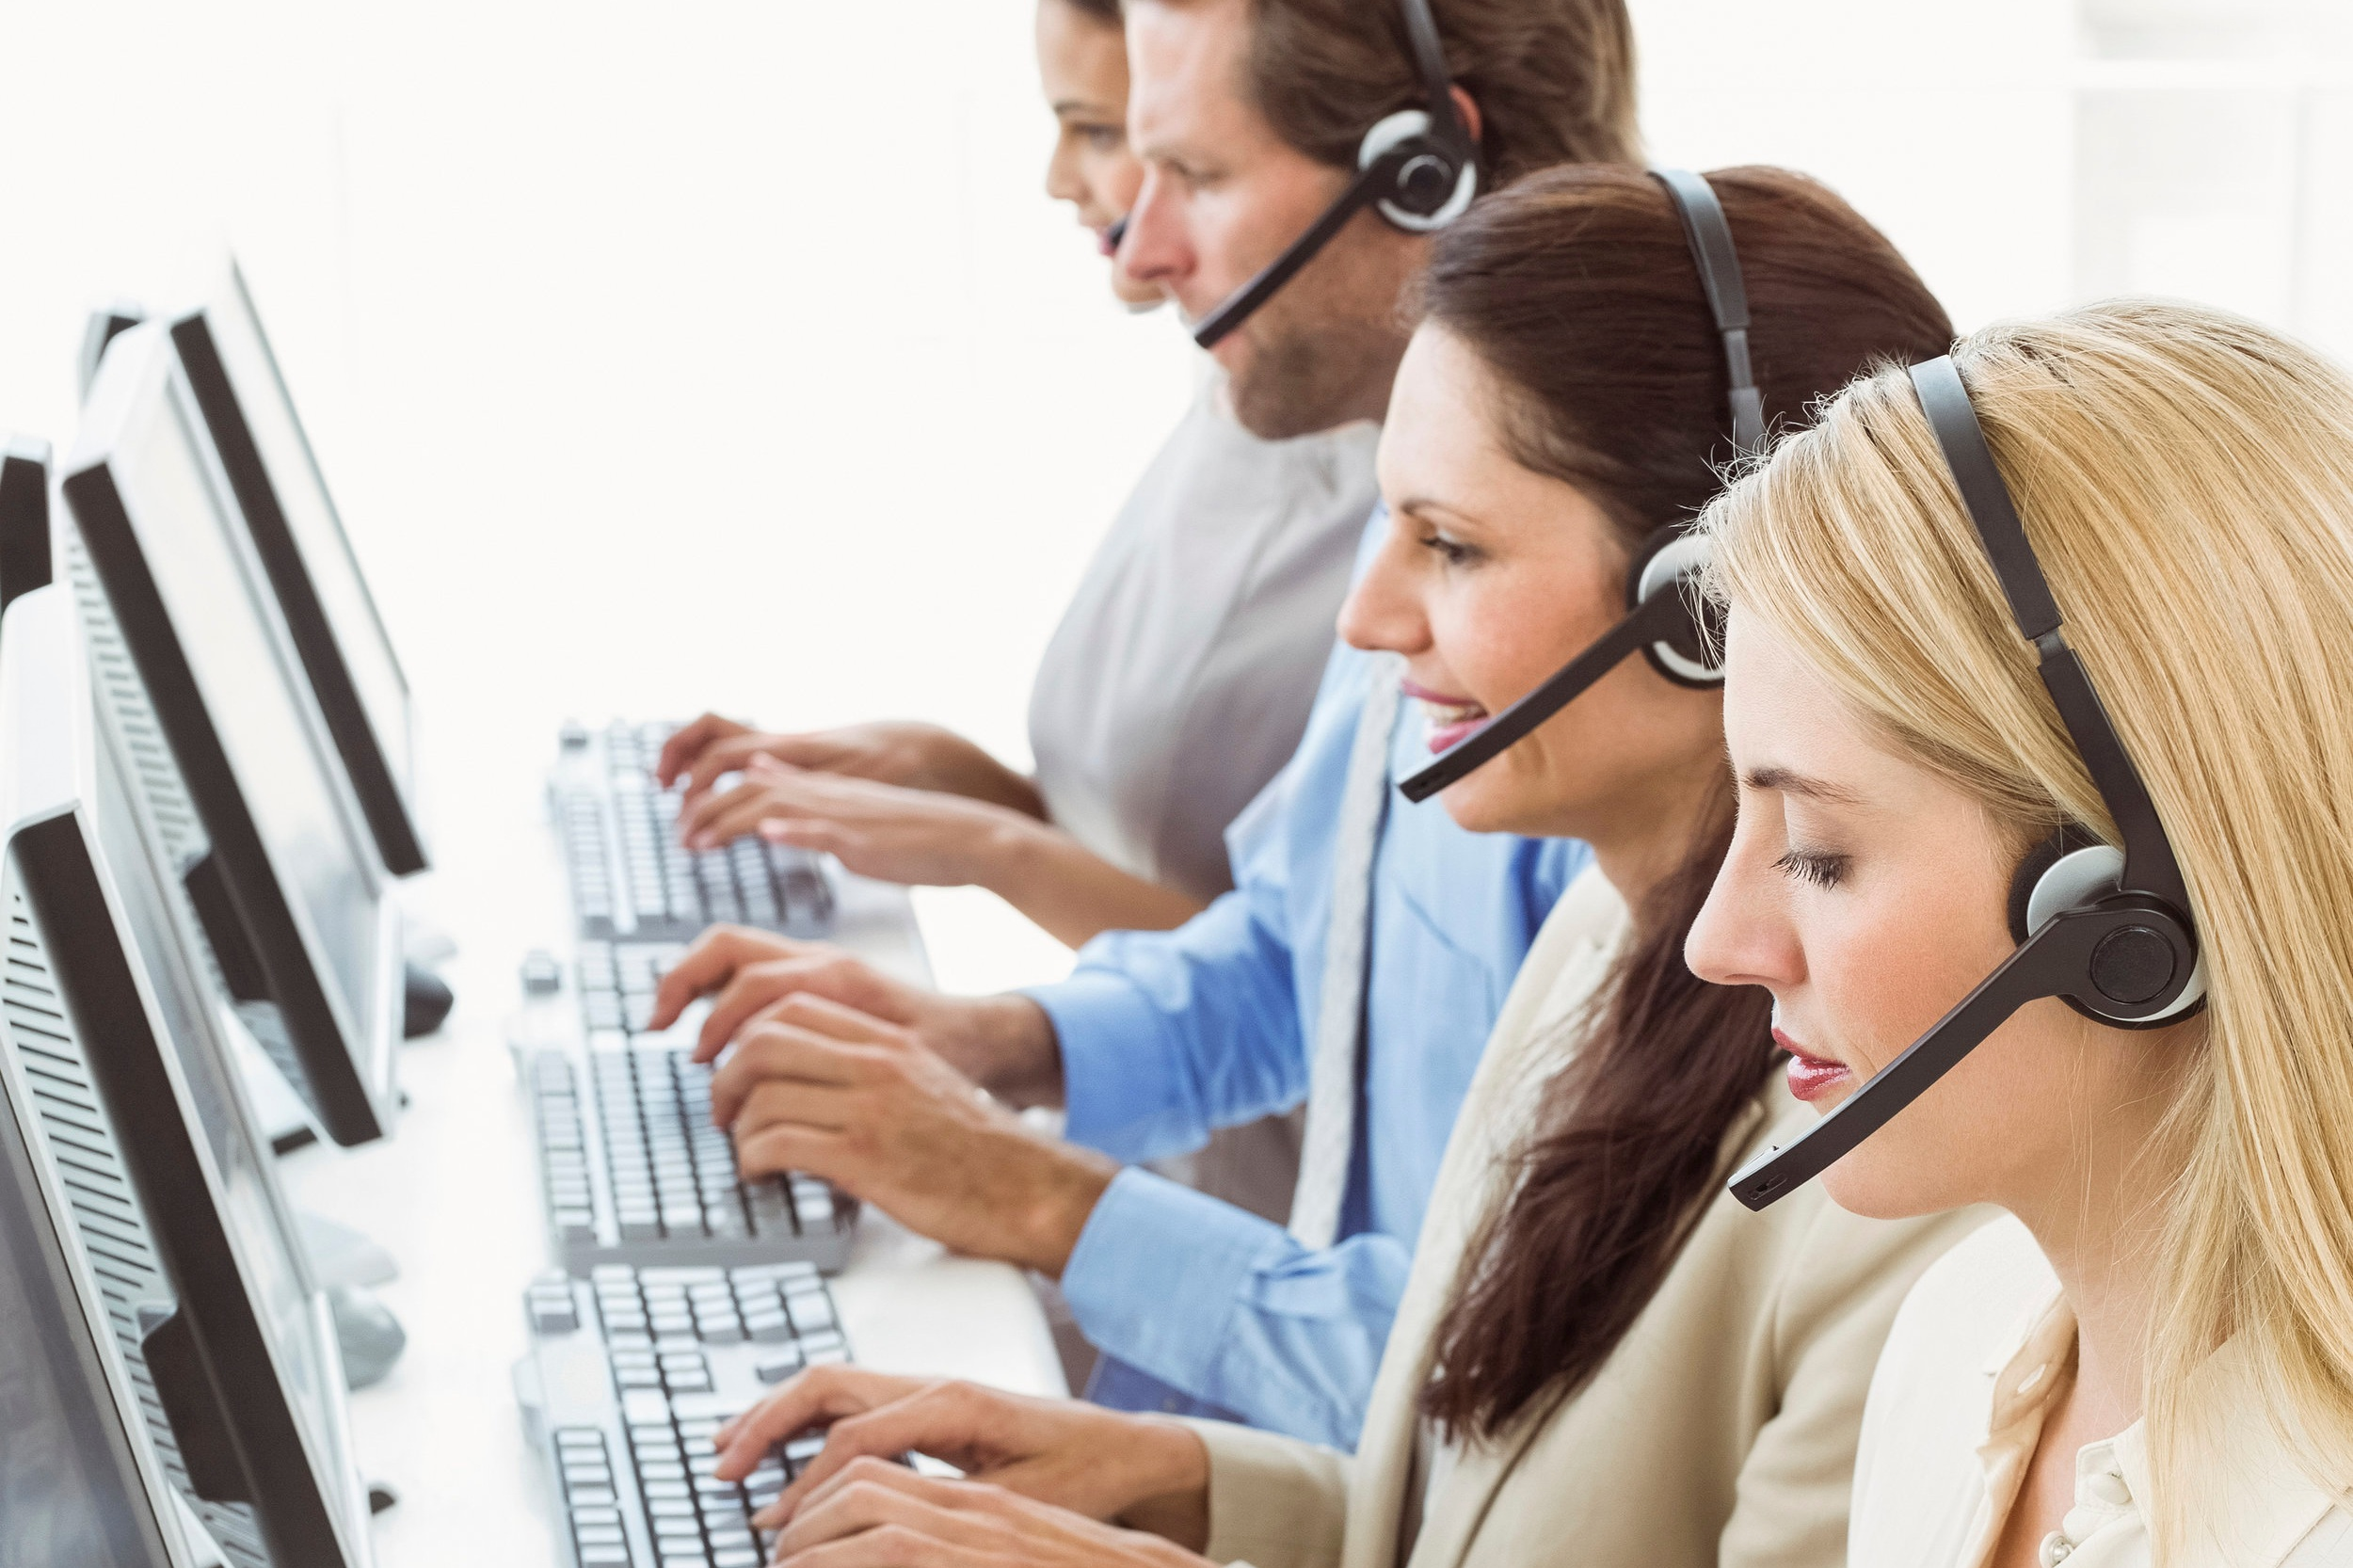 Enterprise Contact Center Consulting and Services - Learn More